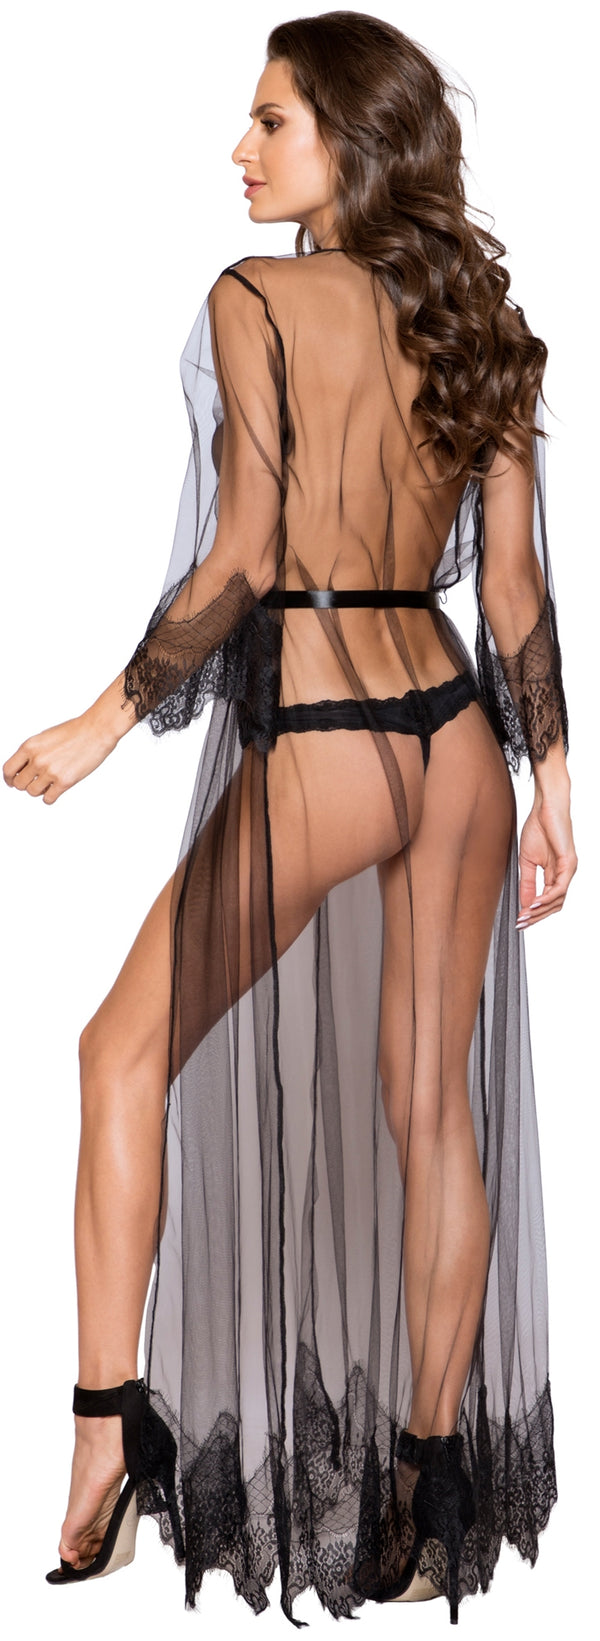 RM-LI255 Sheer Floor Length Robe back black